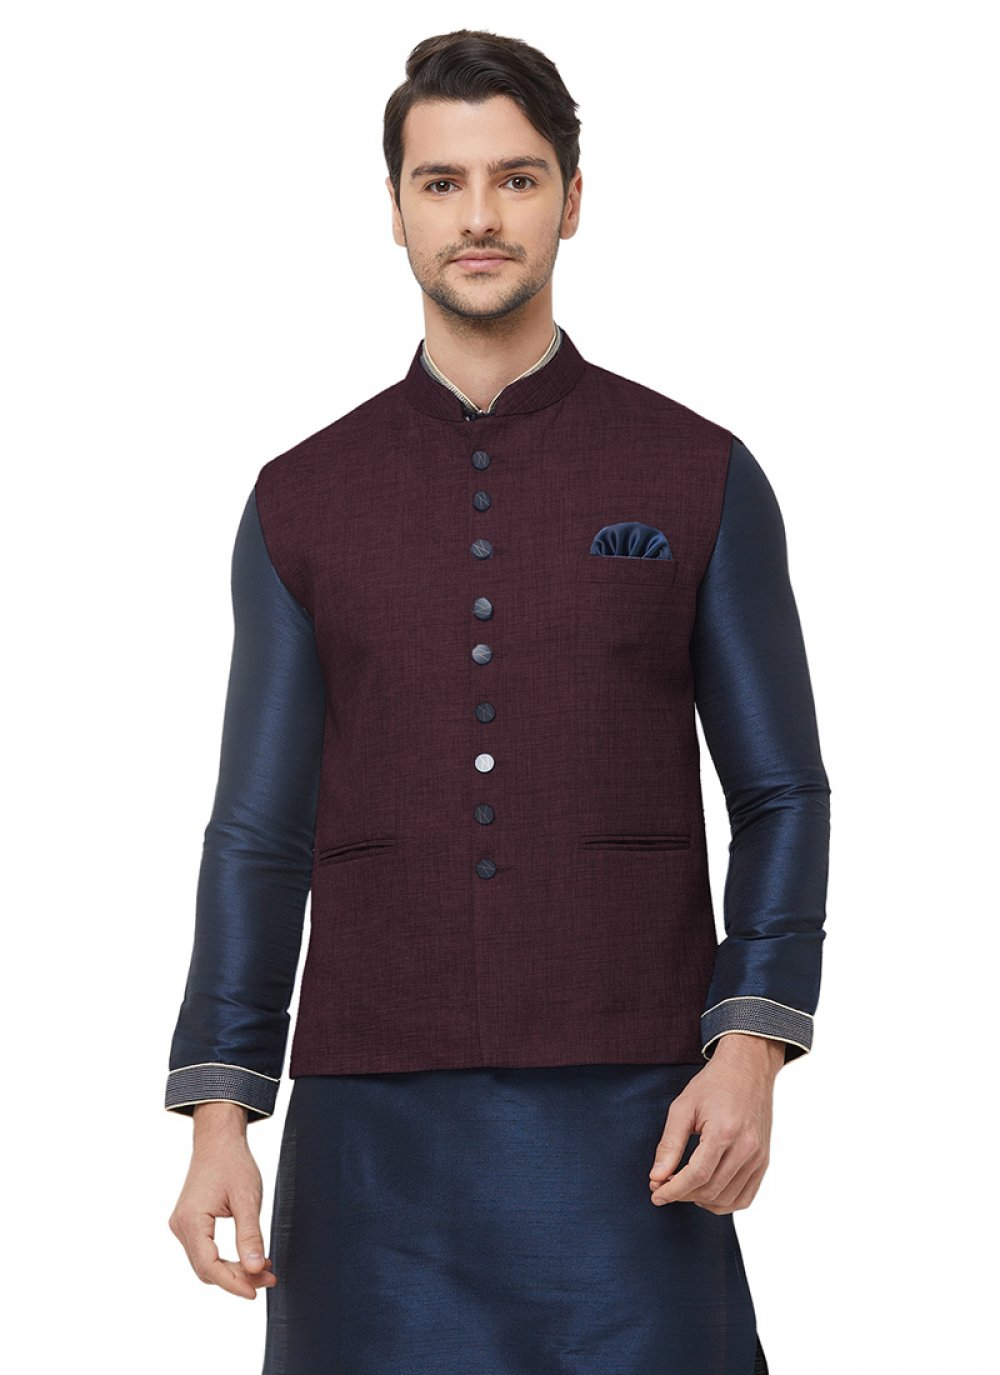 Wine Jute Plain Nehru Jackets